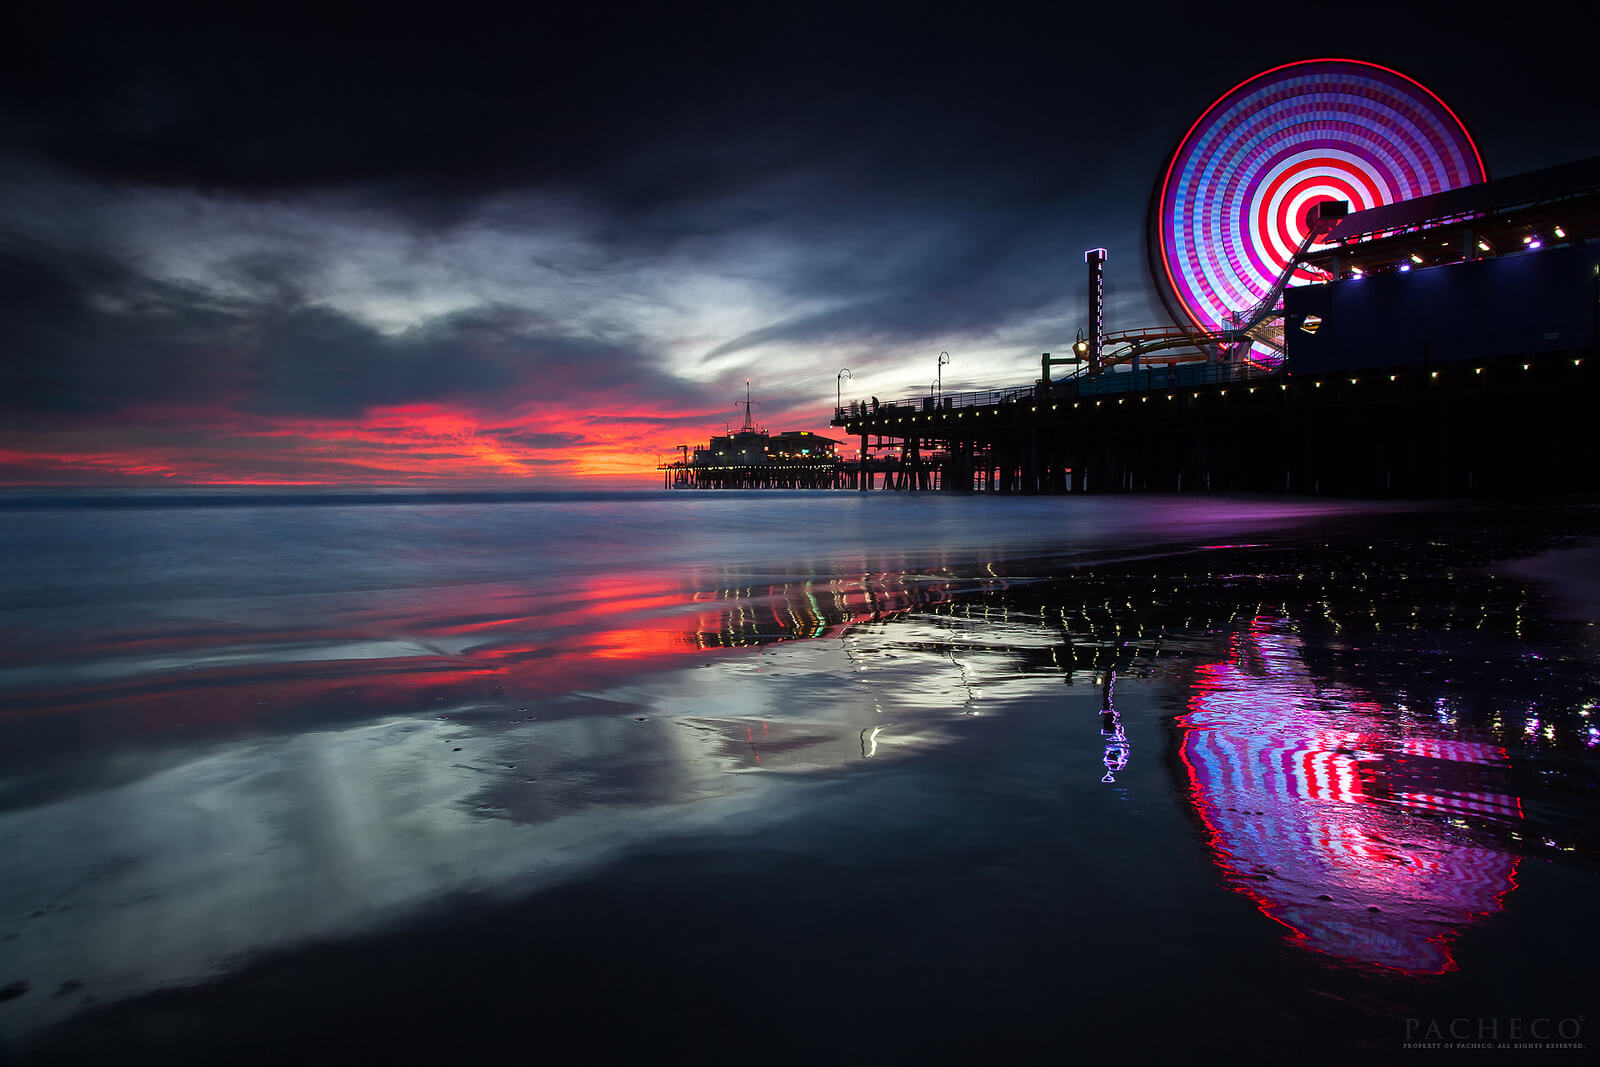 Pacheco - The memory Seeker, Santa Monica Pier, Ca